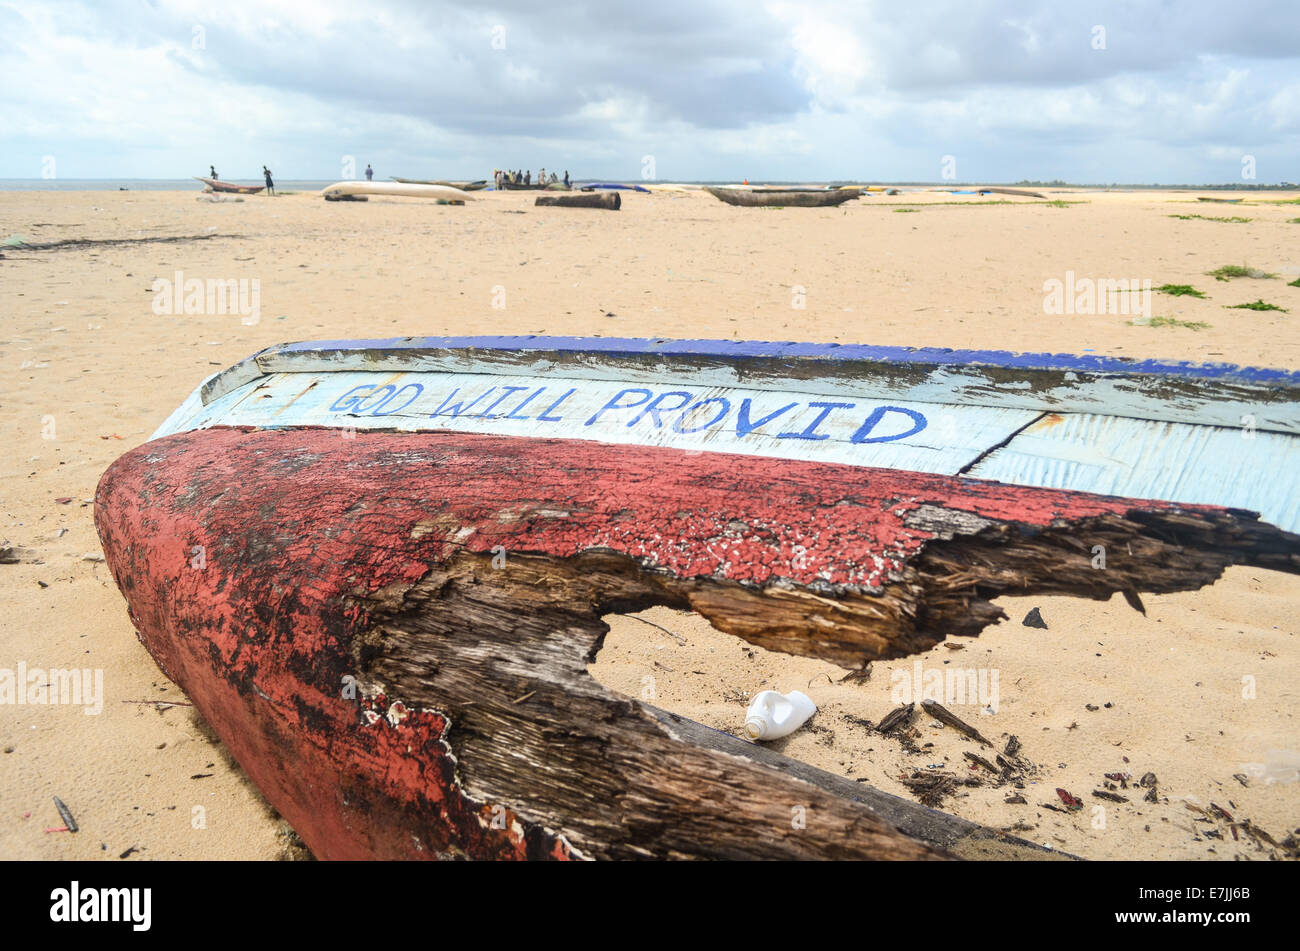 Wooden fishing boat wrecked on the beach of Robertsport, Liberia, reading 'God Will Provid' - Stock Image